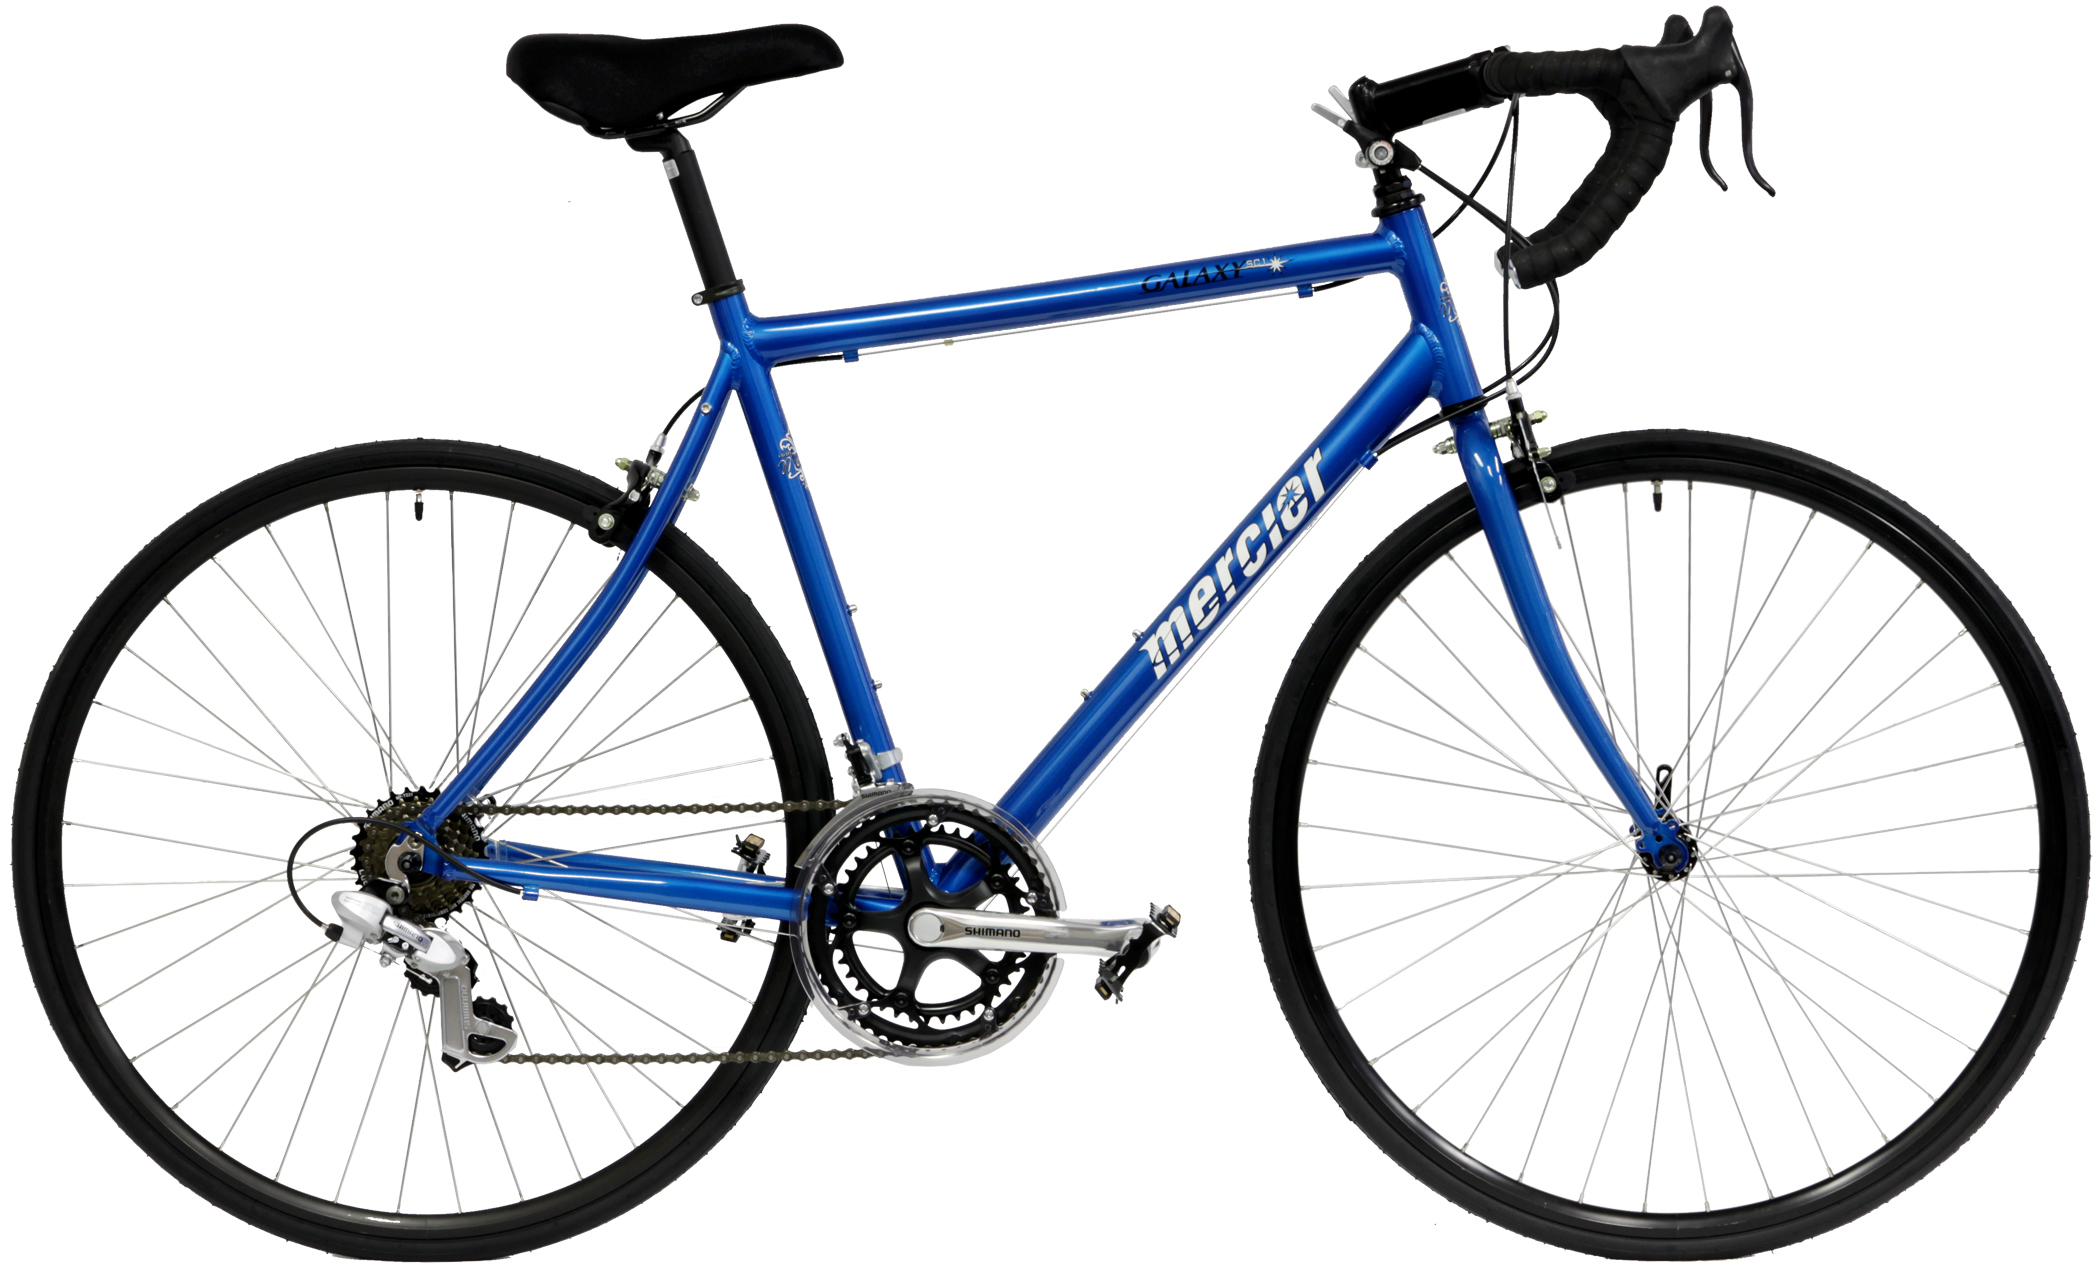 Bikesdirect Bike Reviews Advertised as a MSRP bike